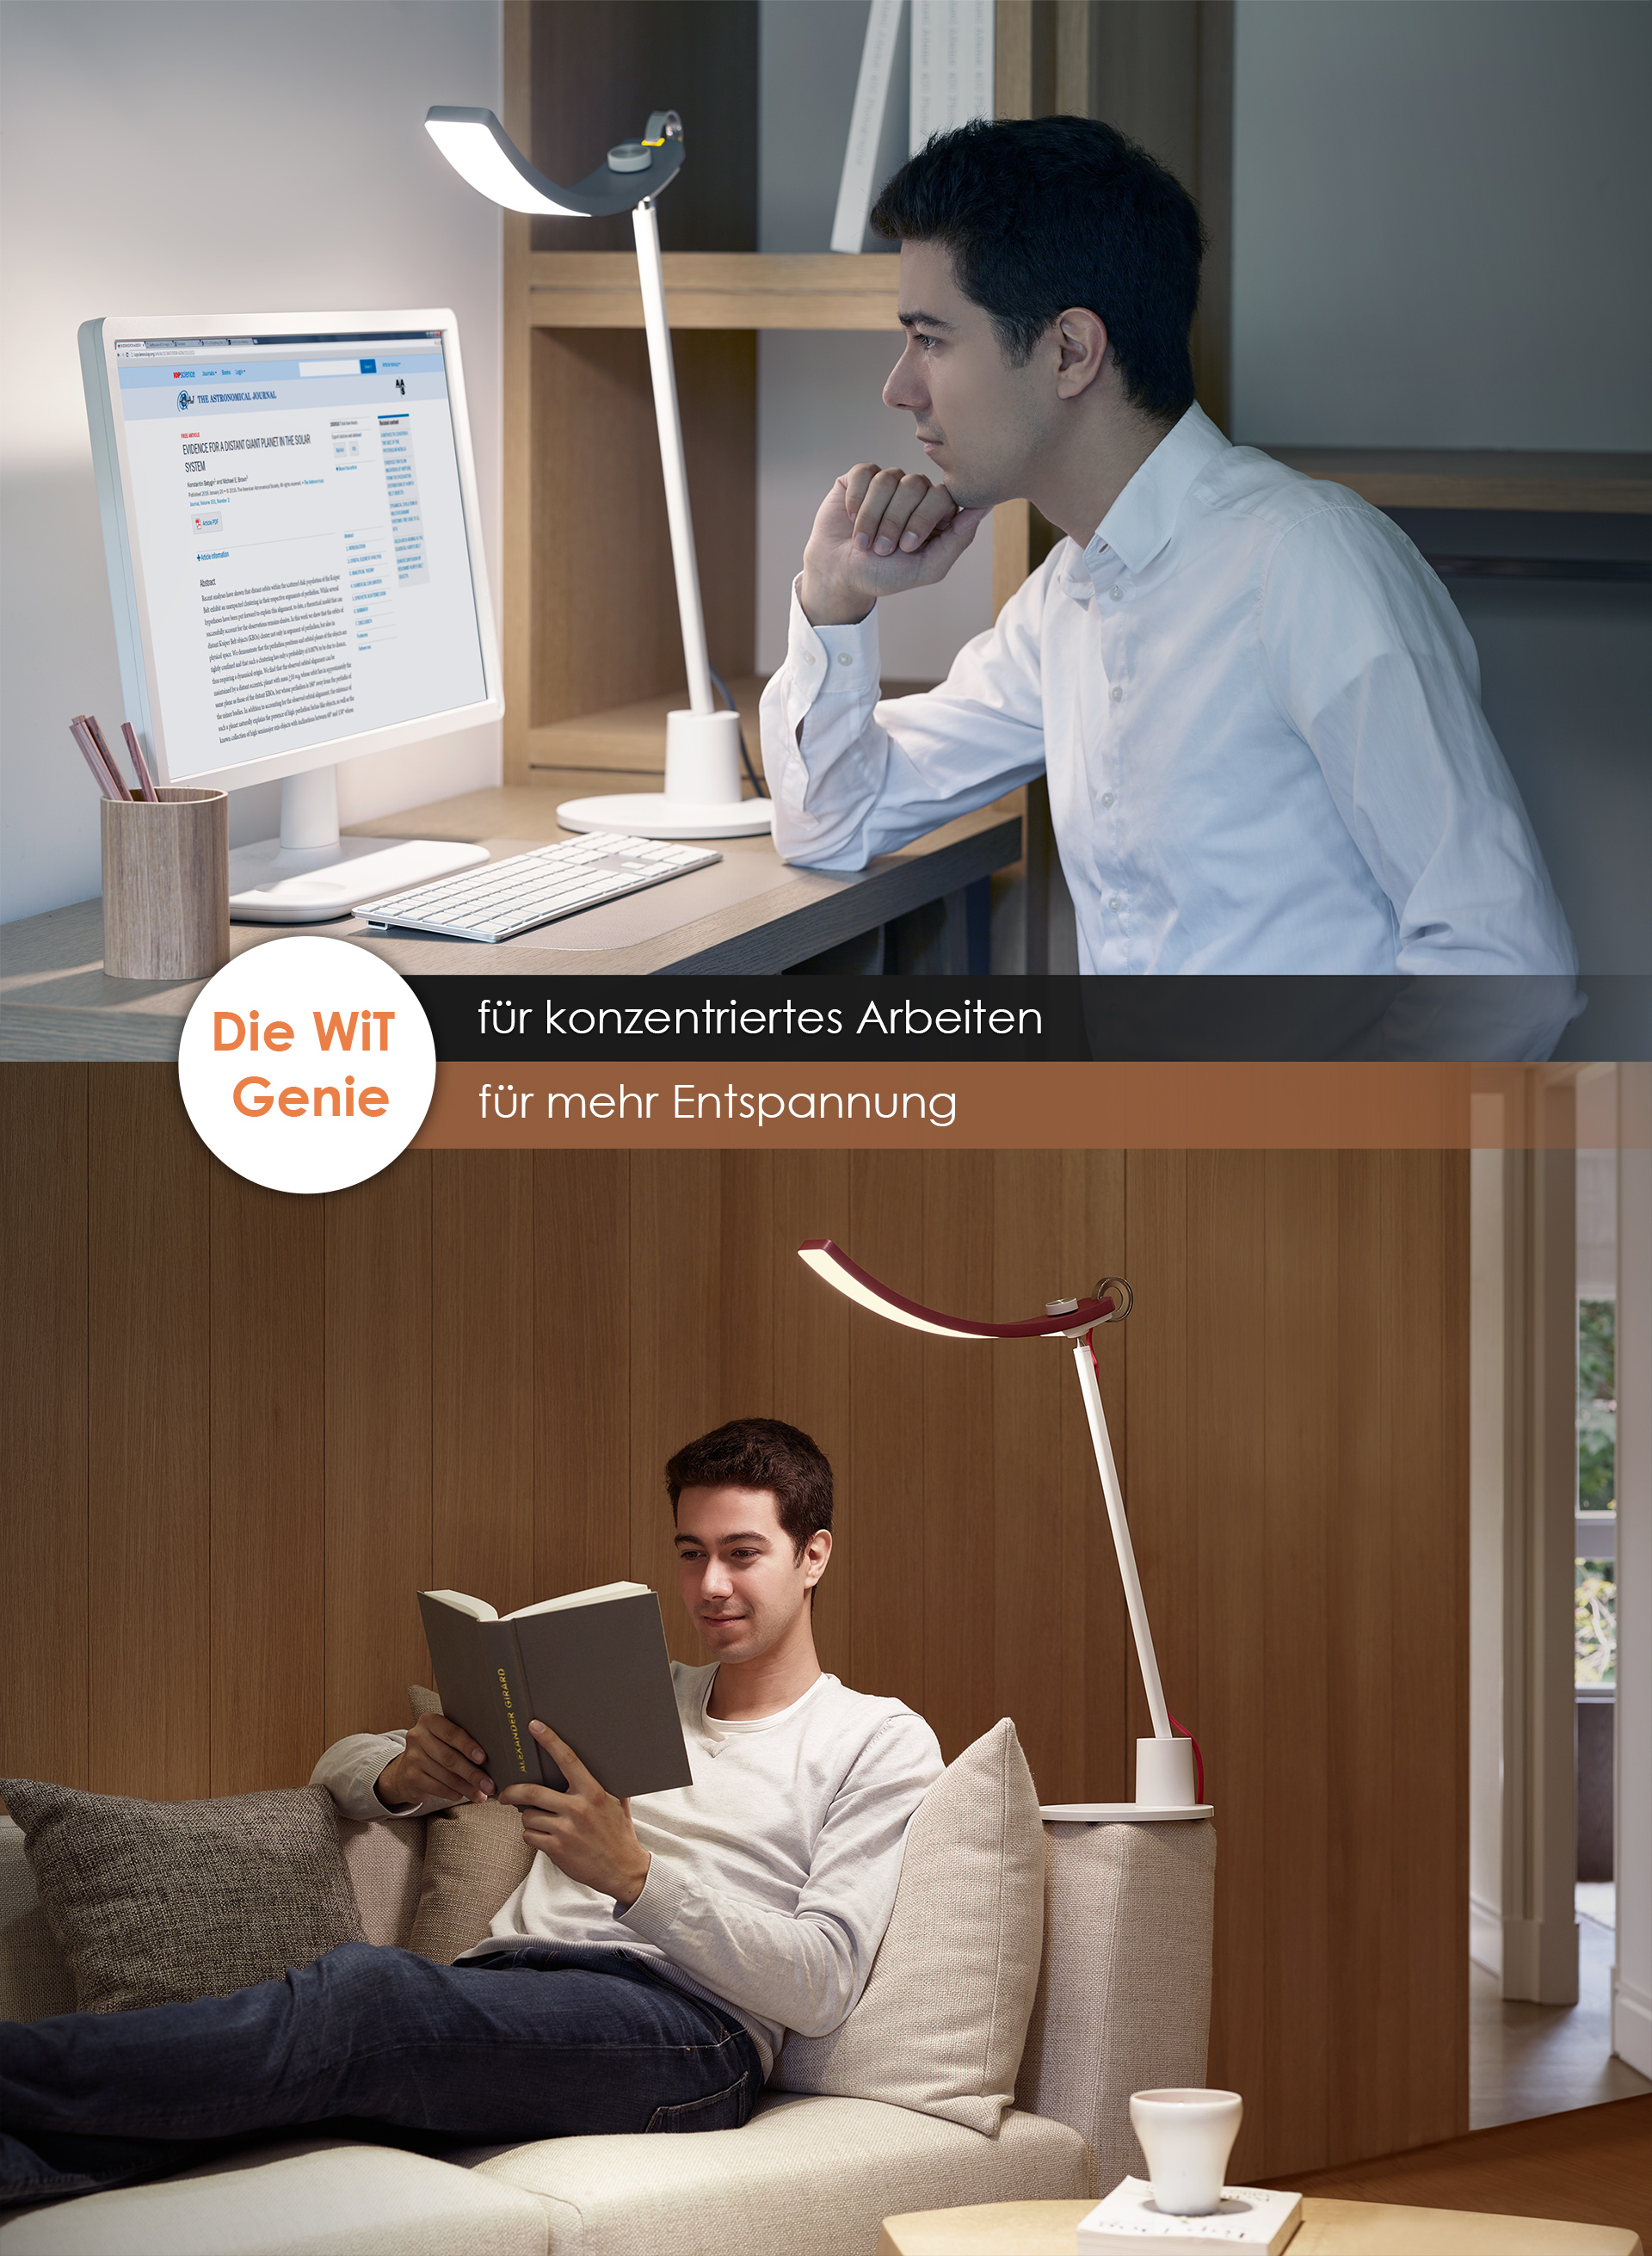 BenQ WiT is for all reading moods and environments. Either you prefer relaxed reading or want to focus on work.